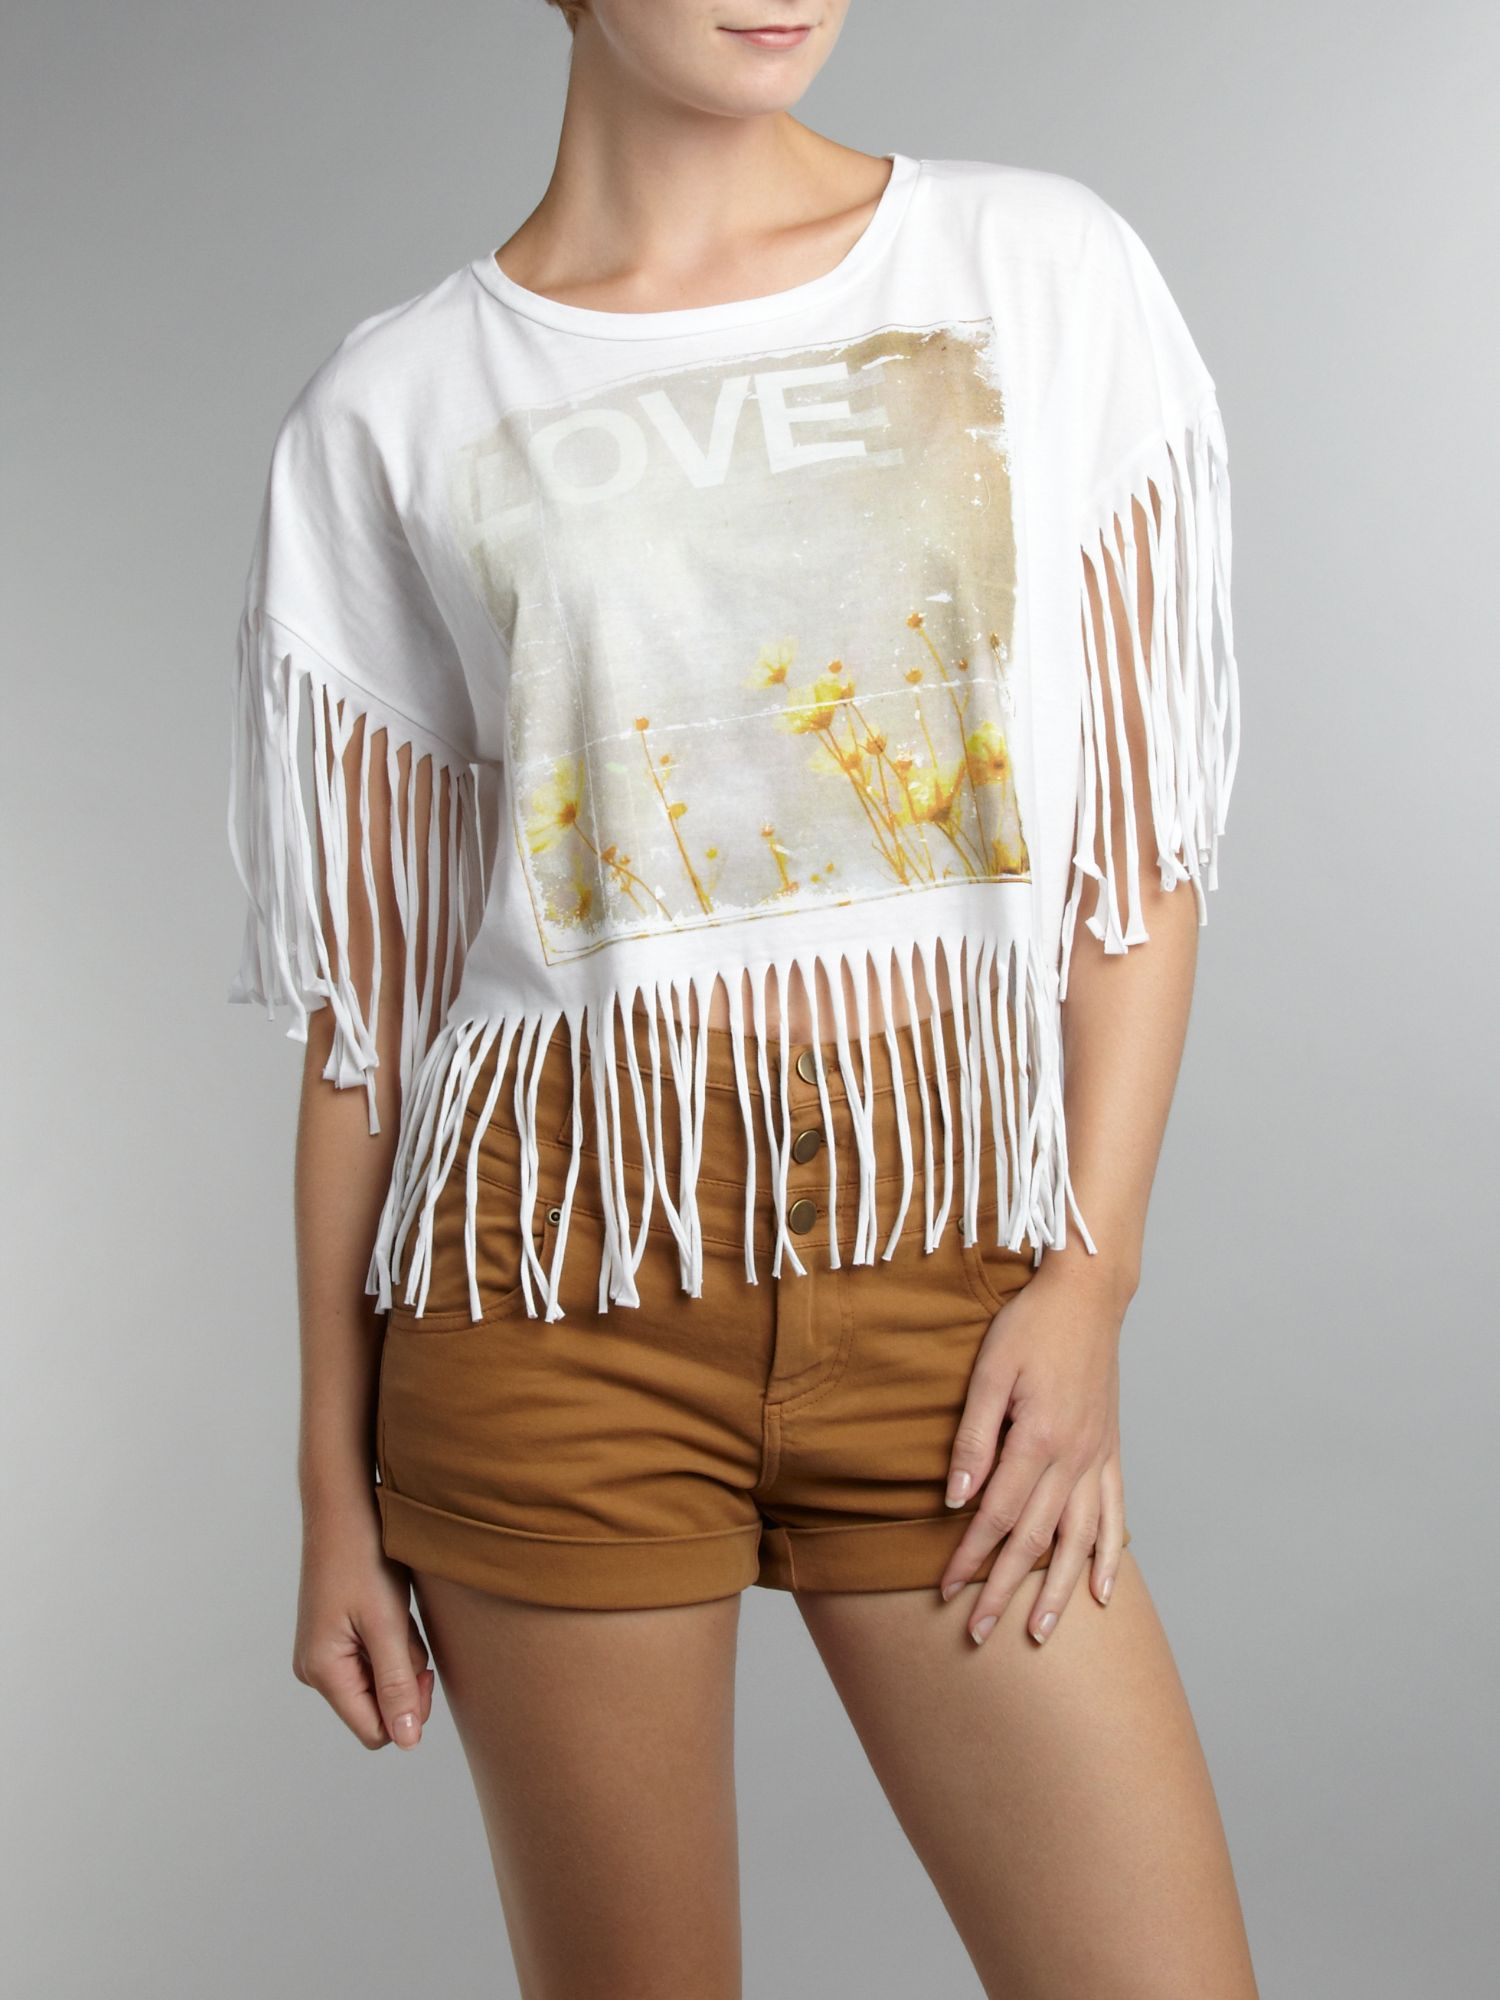 Therapy Womens Therapy Printed fringe t-shirt, product image